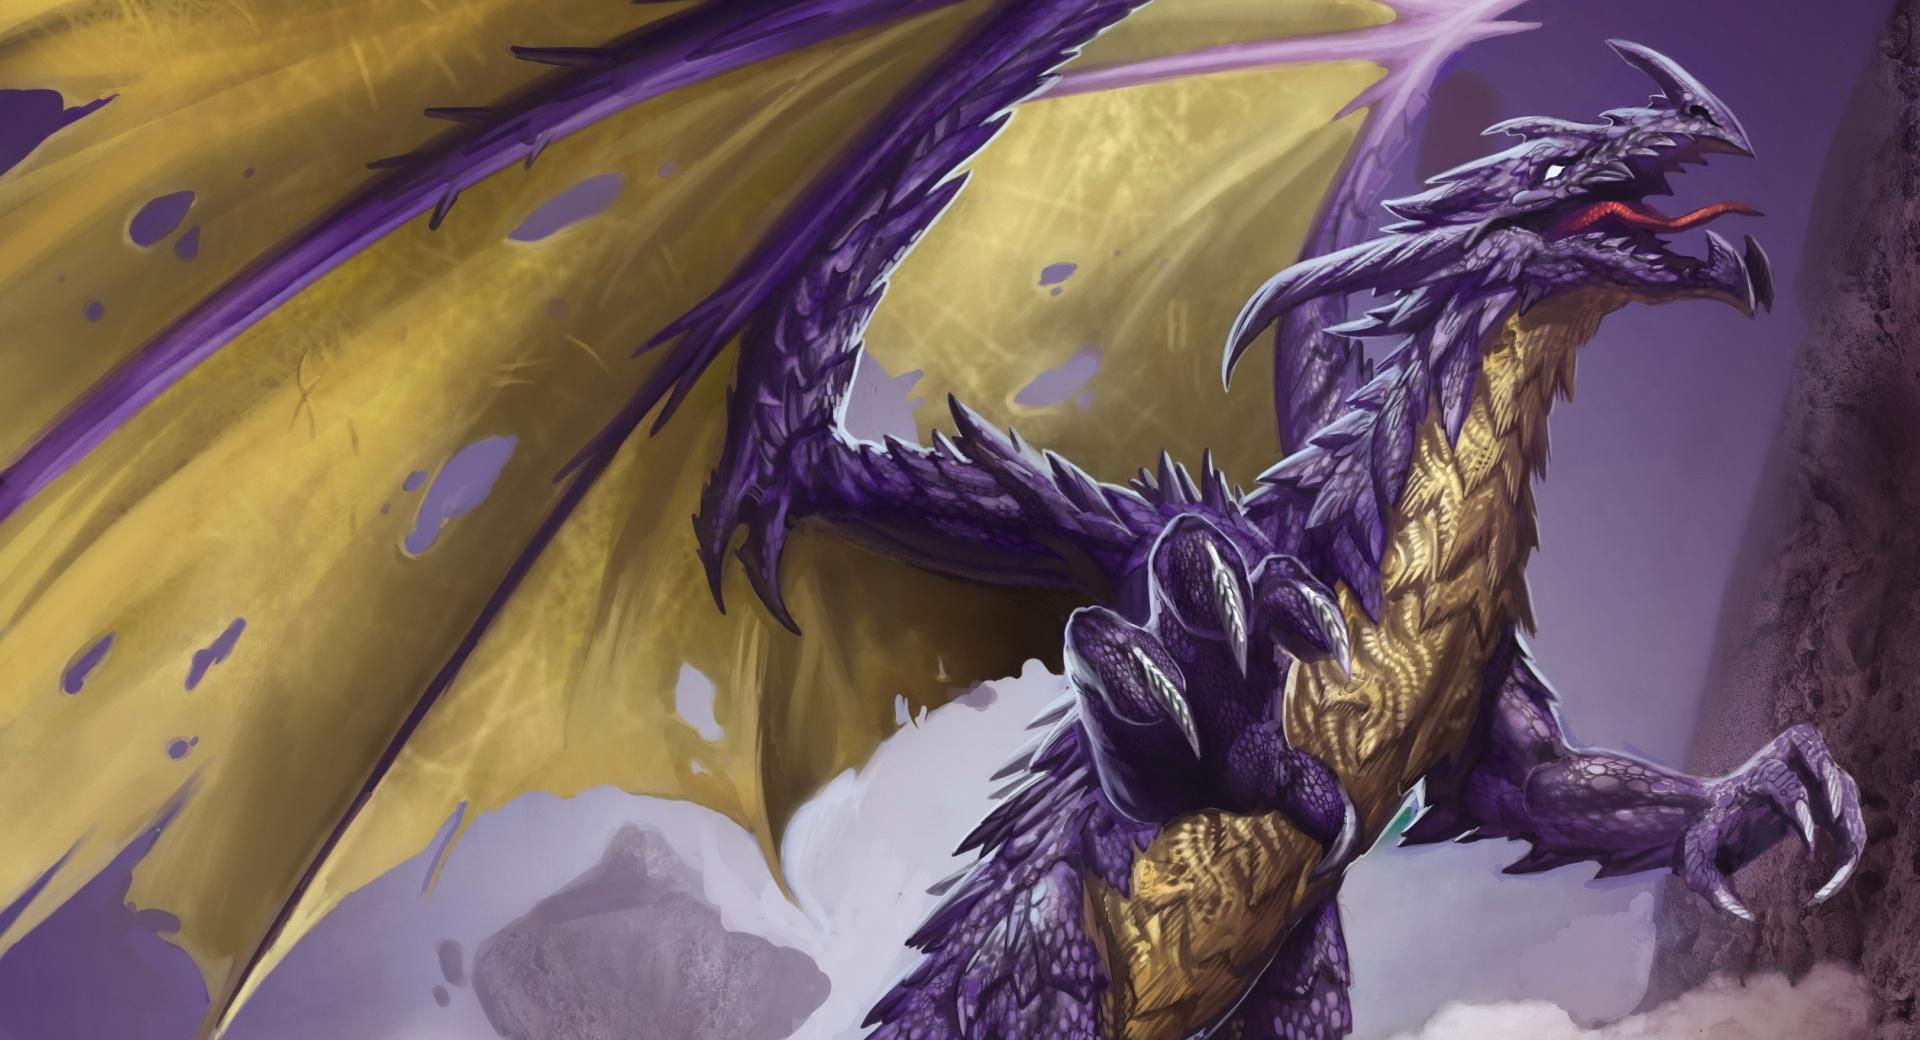 Dragon With Claws wallpapers HD quality